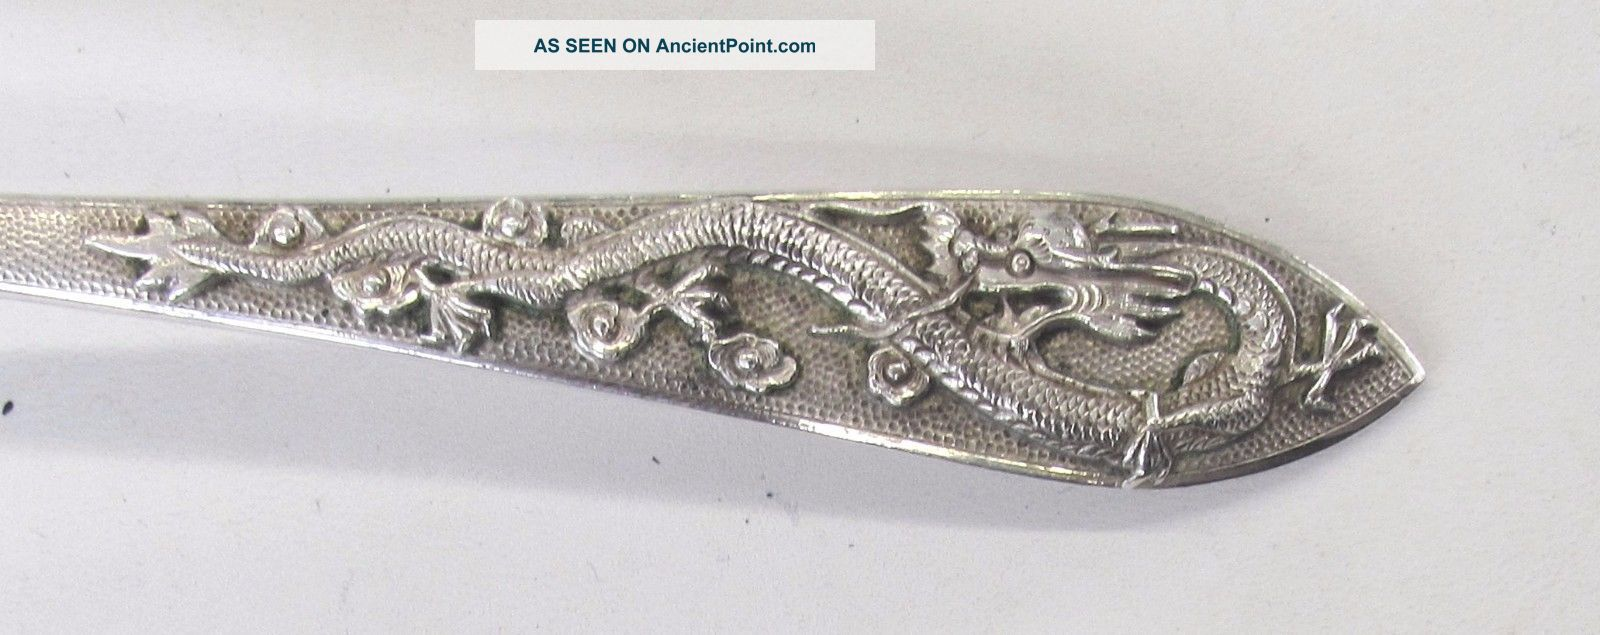 Rare Chinese Antique 1938 Export Silver Teh Ling Flatware With Applied Dragons Flatware & Silverware photo